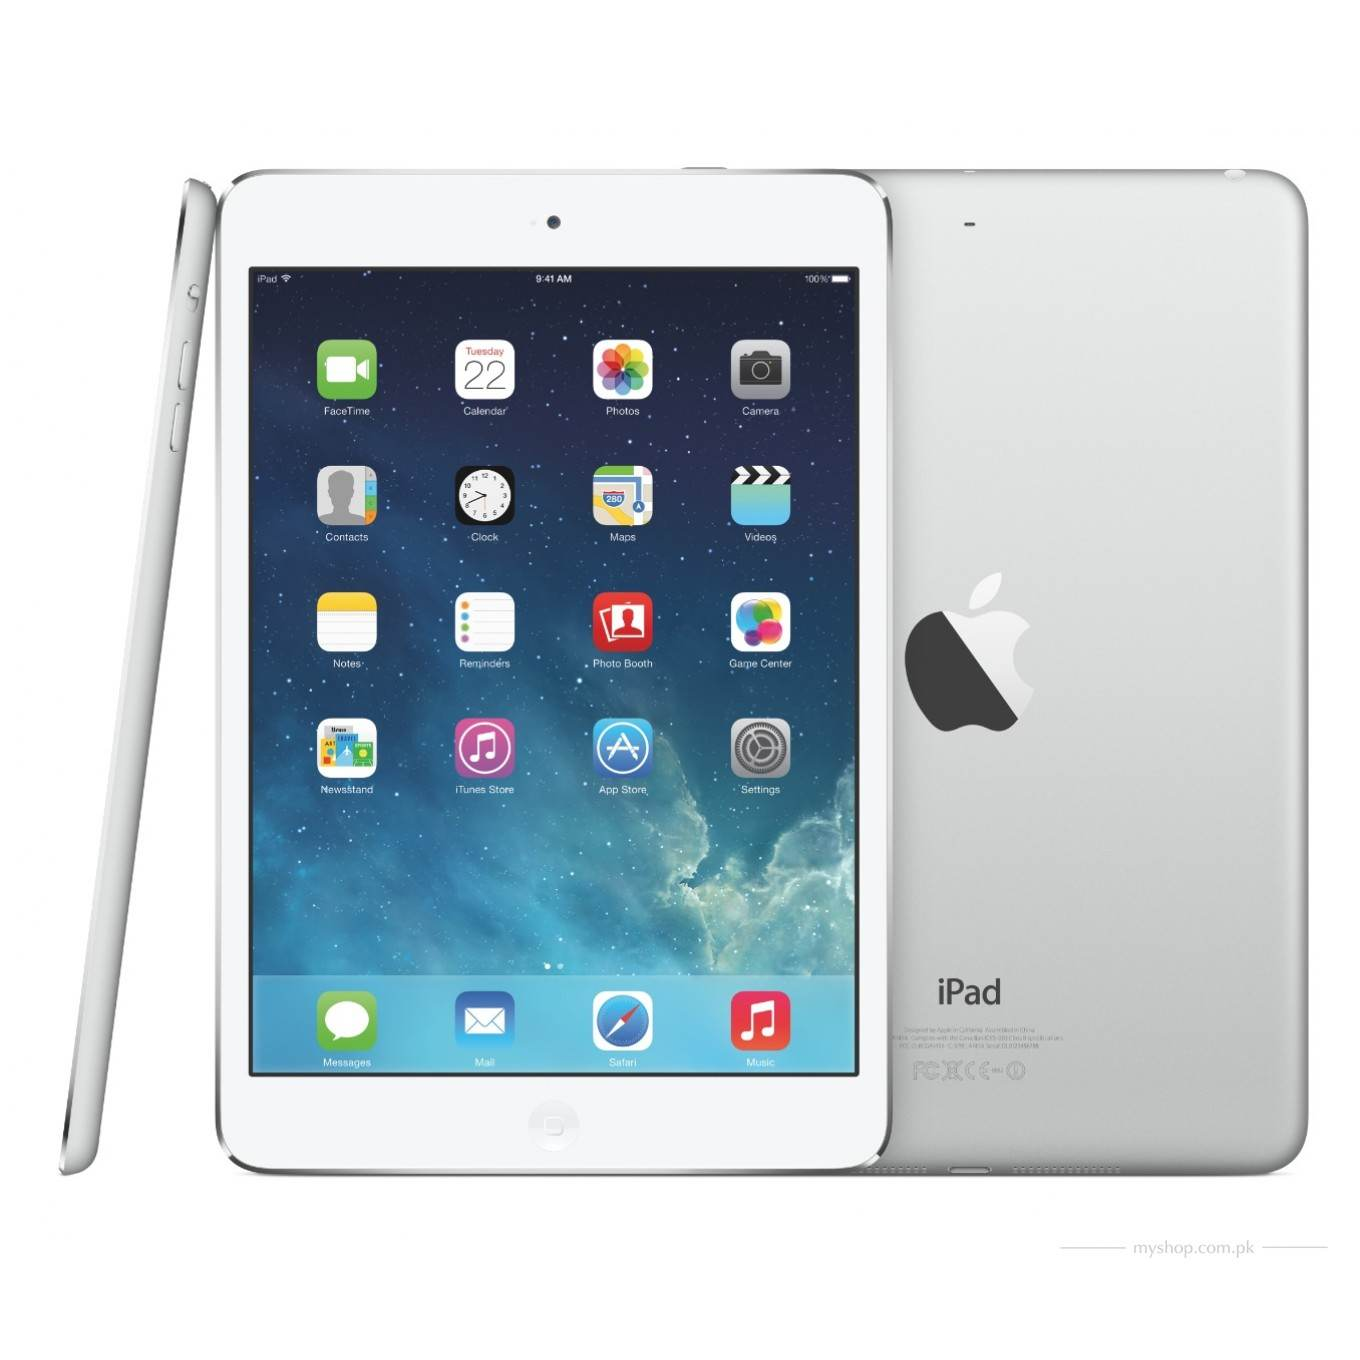 apple ipad air 16gb wi fi price in pakistan. Black Bedroom Furniture Sets. Home Design Ideas